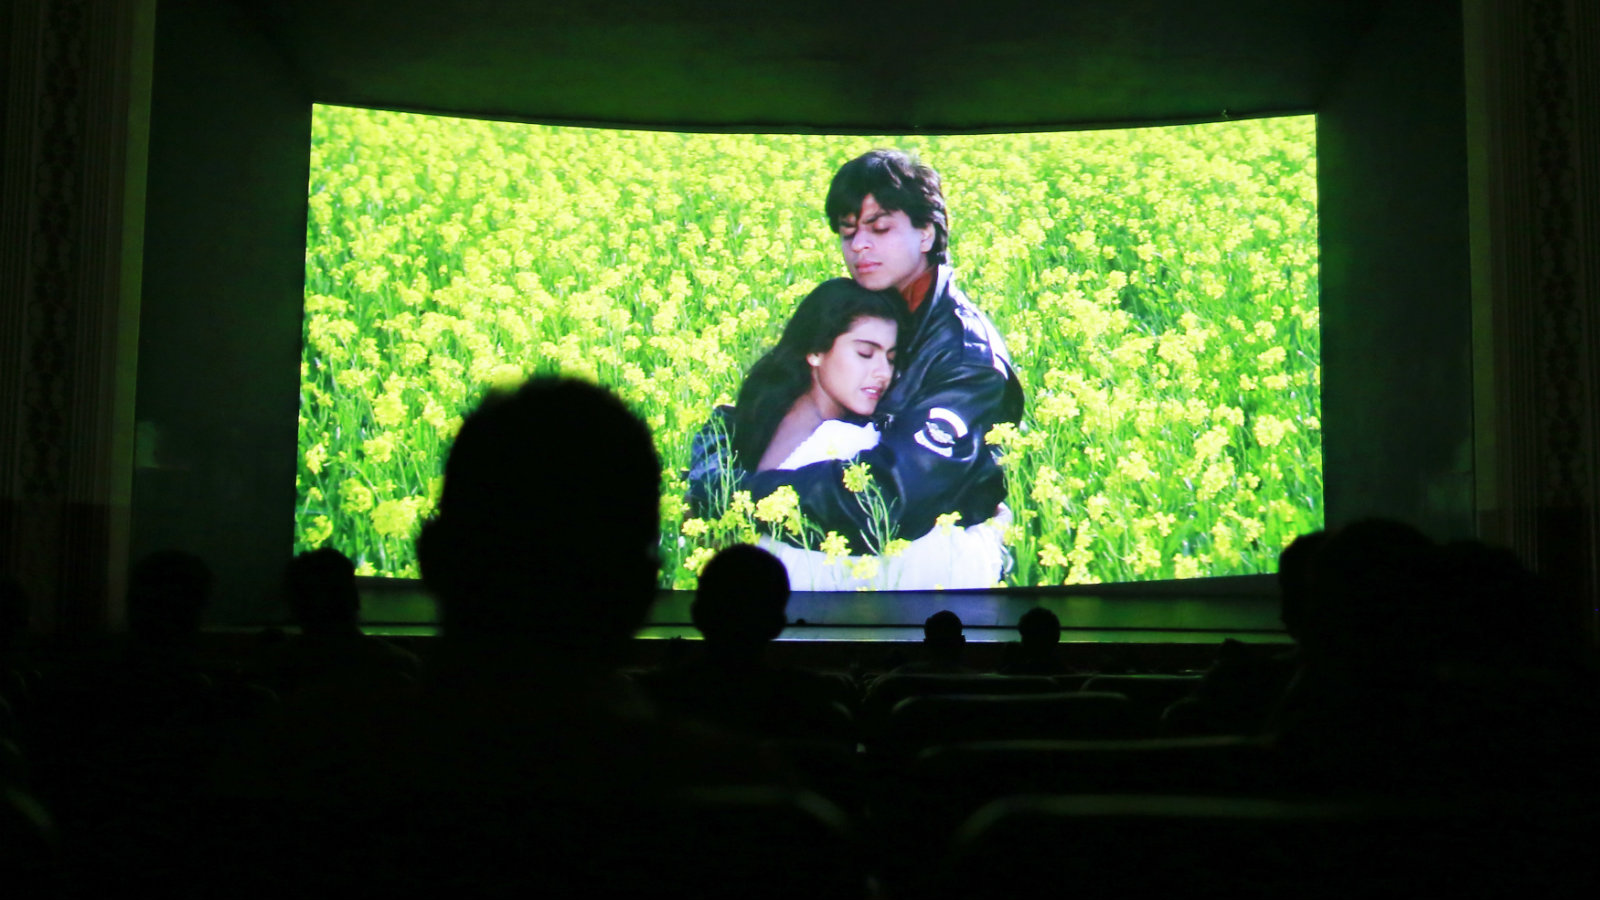 "Bollywood actors Shah Rukh Khan (R) and Kajol (L) are seen on the screen during the screening of ""Dilwale Dulhania Le Jayenge"" (The Big Hearted Will Take the Bride) inside Maratha Mandir theatre in Mumbai December 11, 2014. The movie, released in October 1995, has set a record of completing 1000 weeks of continuous screening at a cinema, a feat unmatched by any other Bollywood movies. According to Manoj Desai, owner of the theatre, the movie, which is still being screened, enjoys at least 50 to 60 percent occupancy on weekdays and full house on weekends at his theatre. The movie is screened only in the morning and the ticket price ranges from 15 to 20 Indian rupees ($0.24-$0.32). Picture taken December 11, 2014."